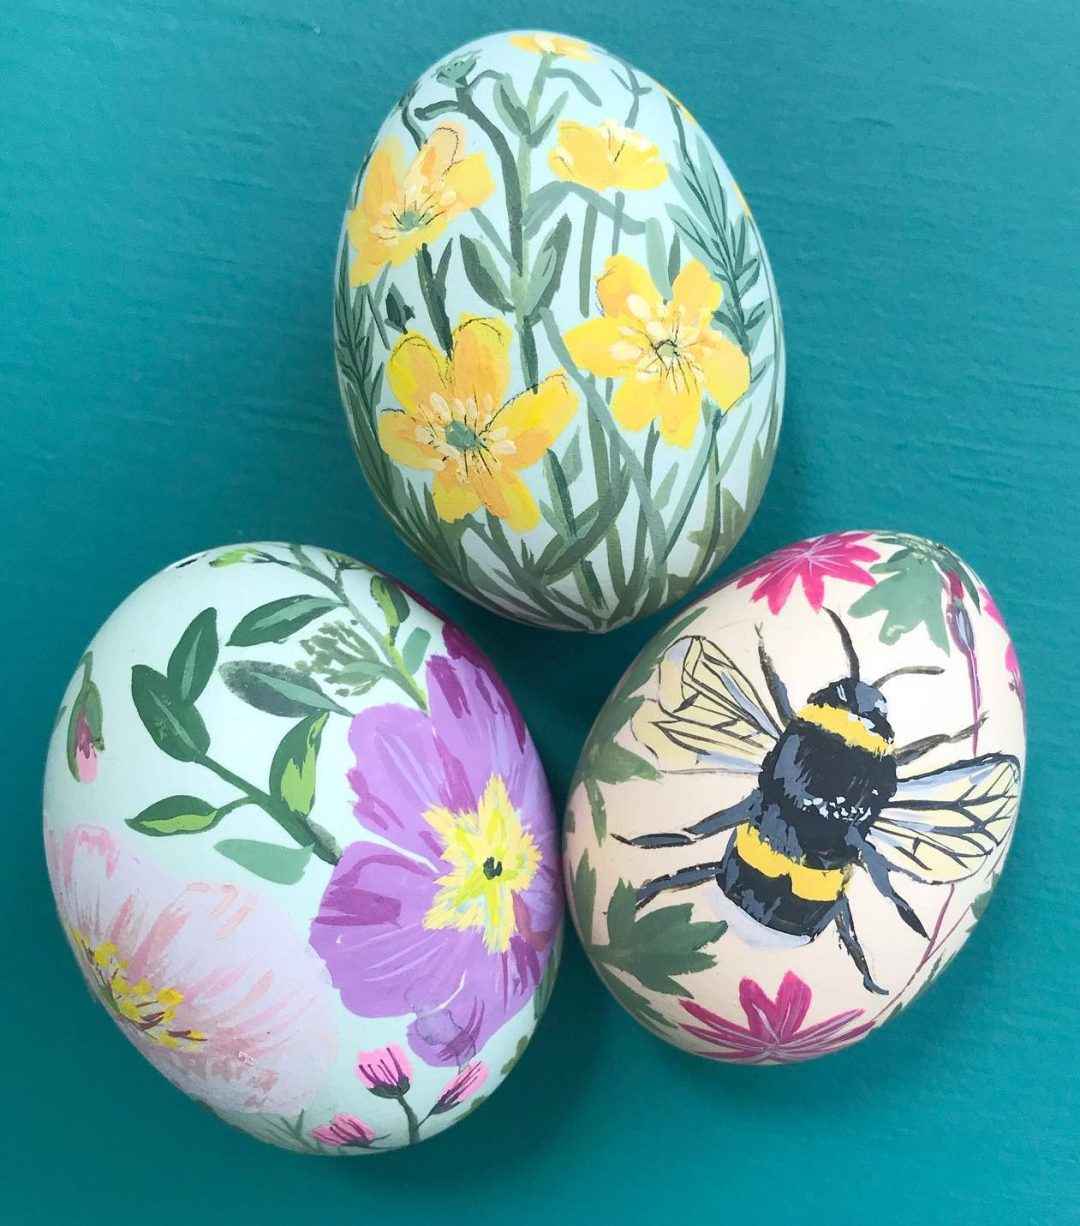 Creative Easter egg designs with bee and flowers